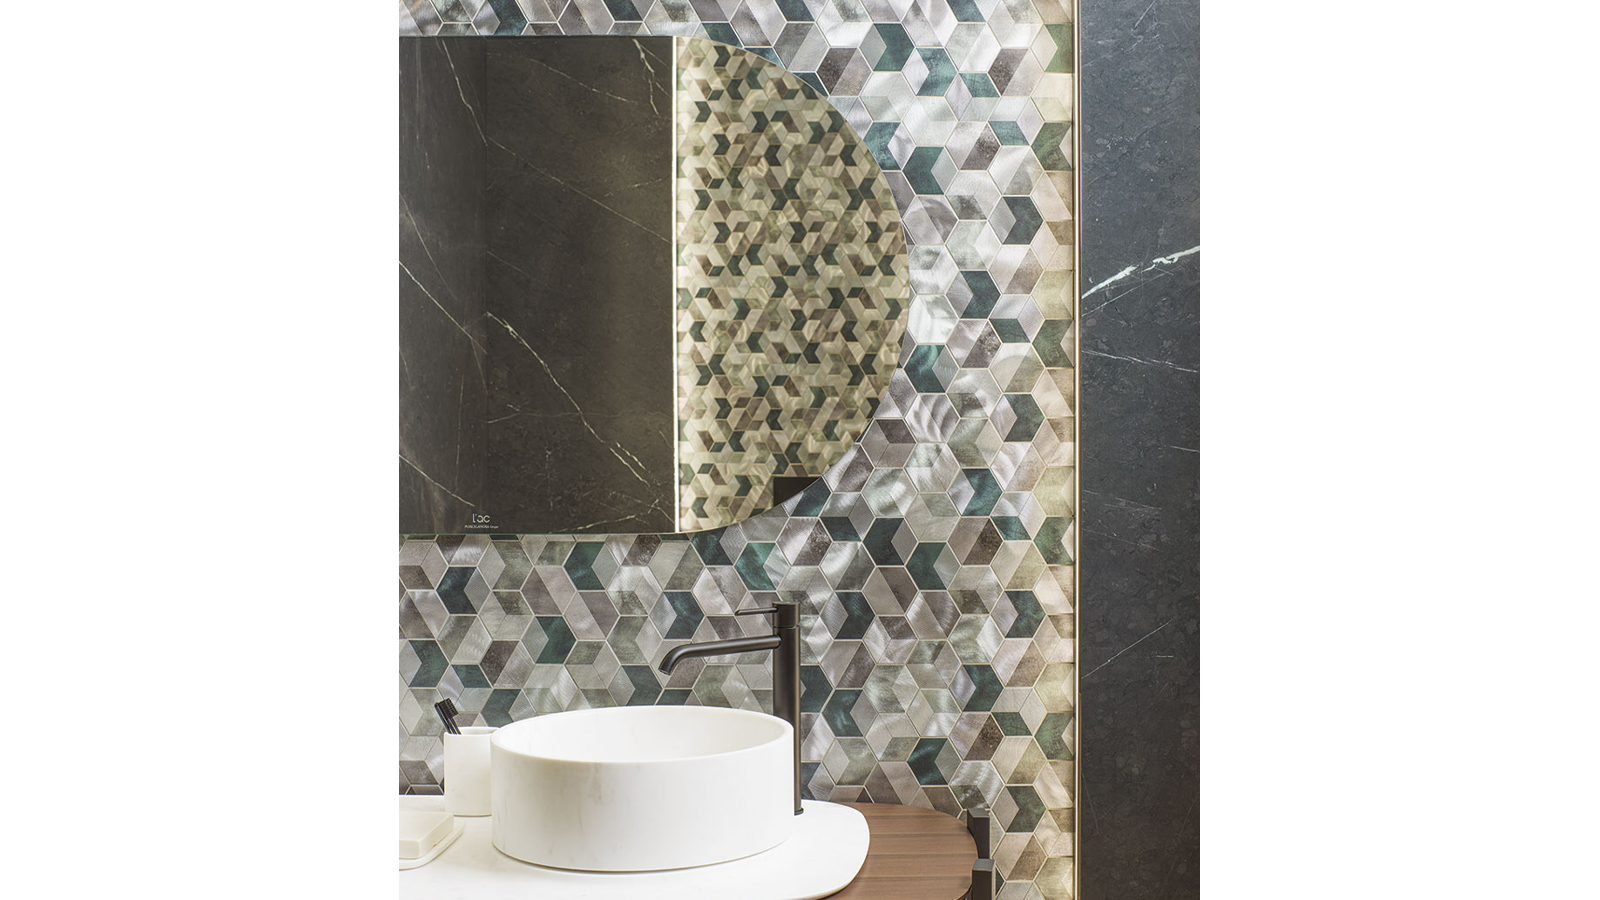 Lavabo Balda Doble Persian Americano+Mosaico Future Emerald Antic Colonial Porcelanosa-2